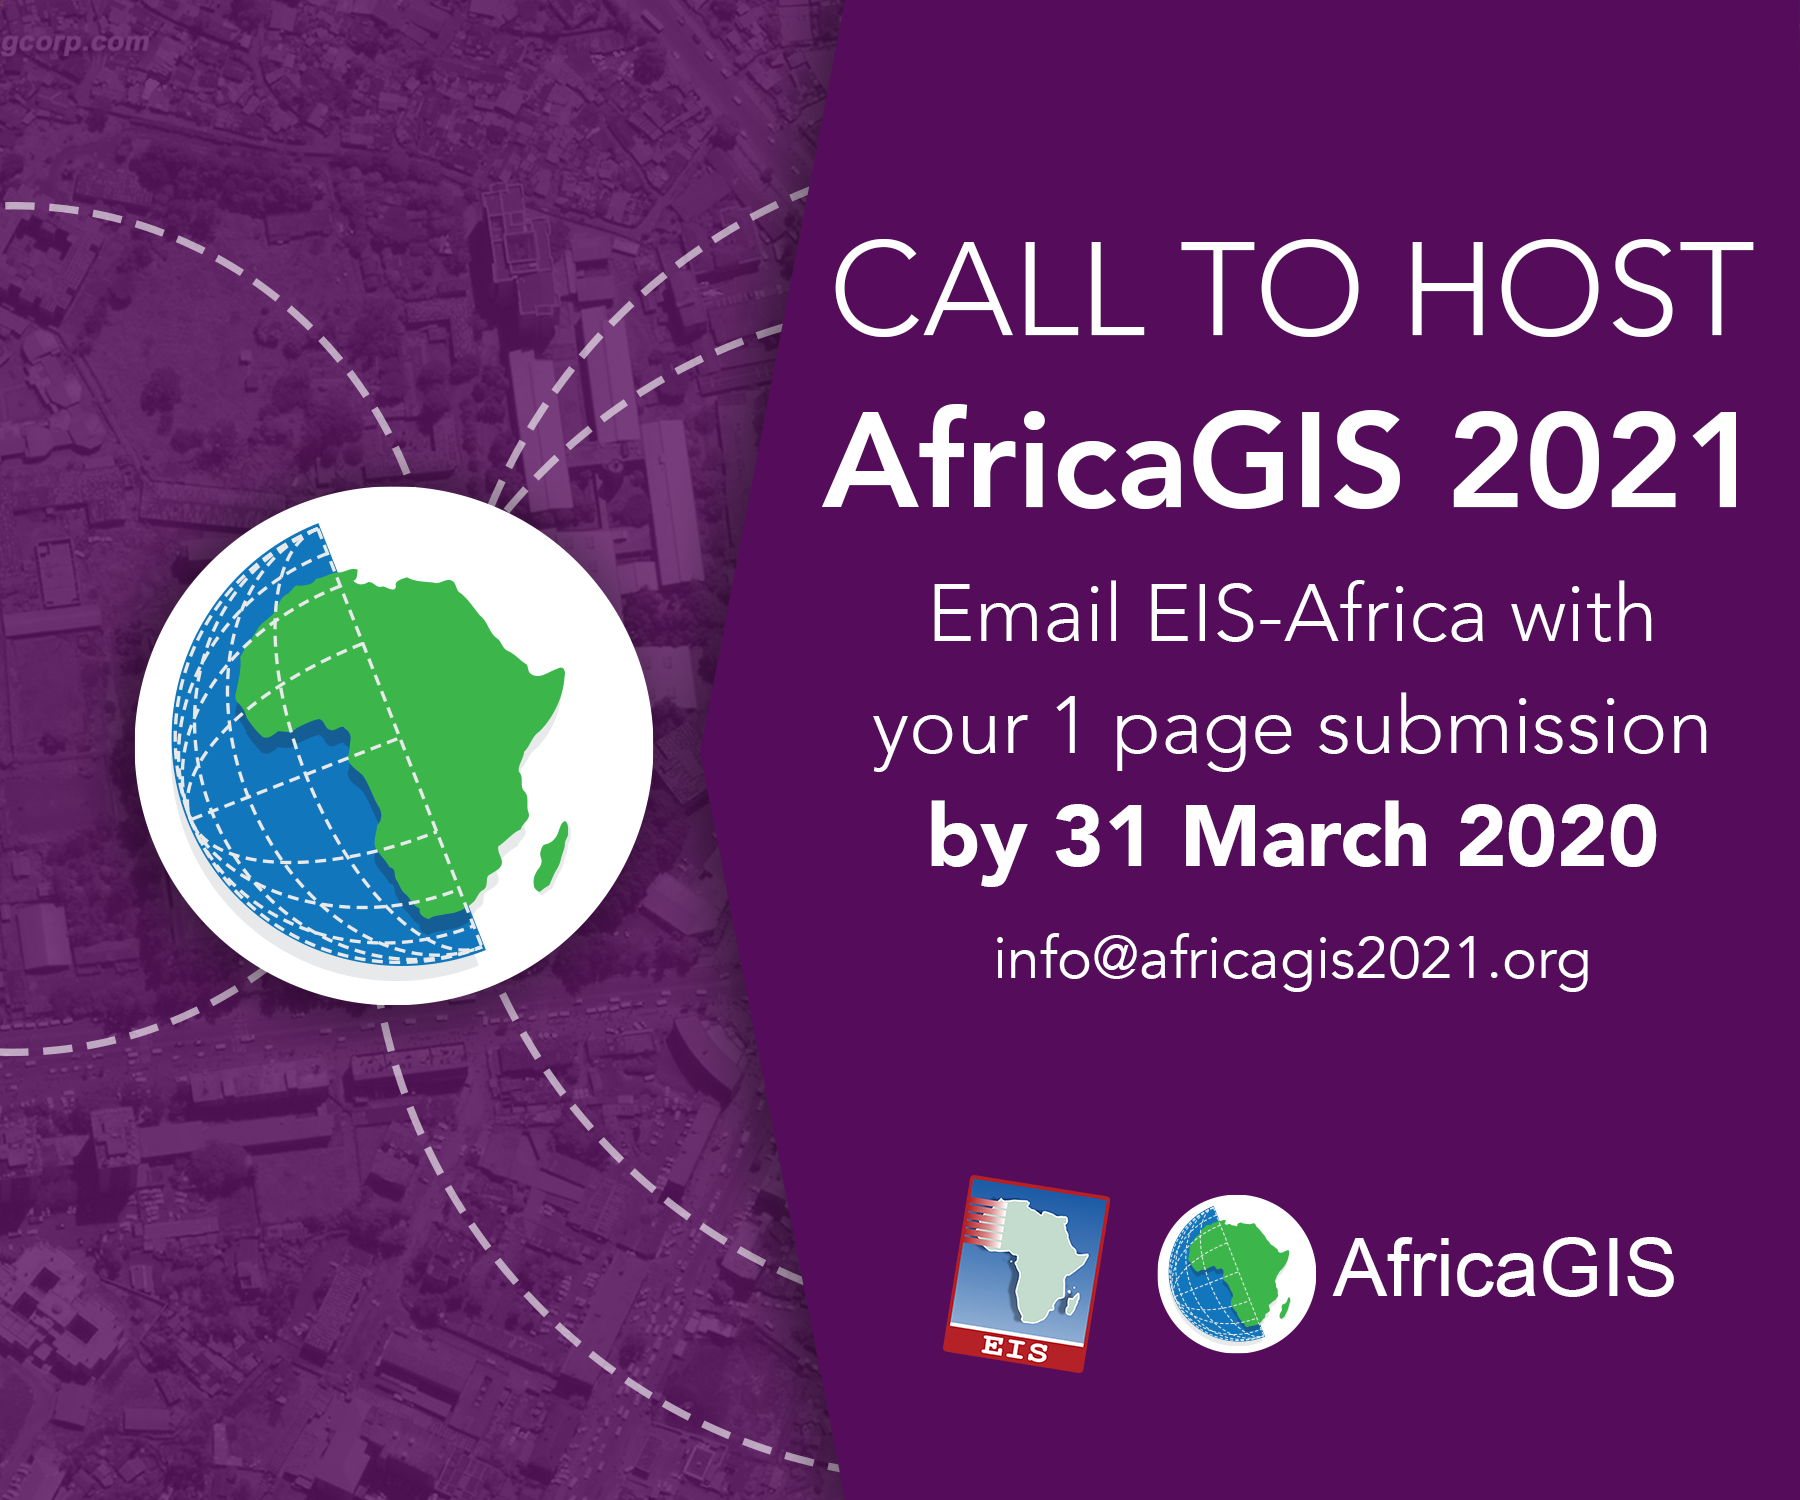 Call to host AfricaGIS 2021